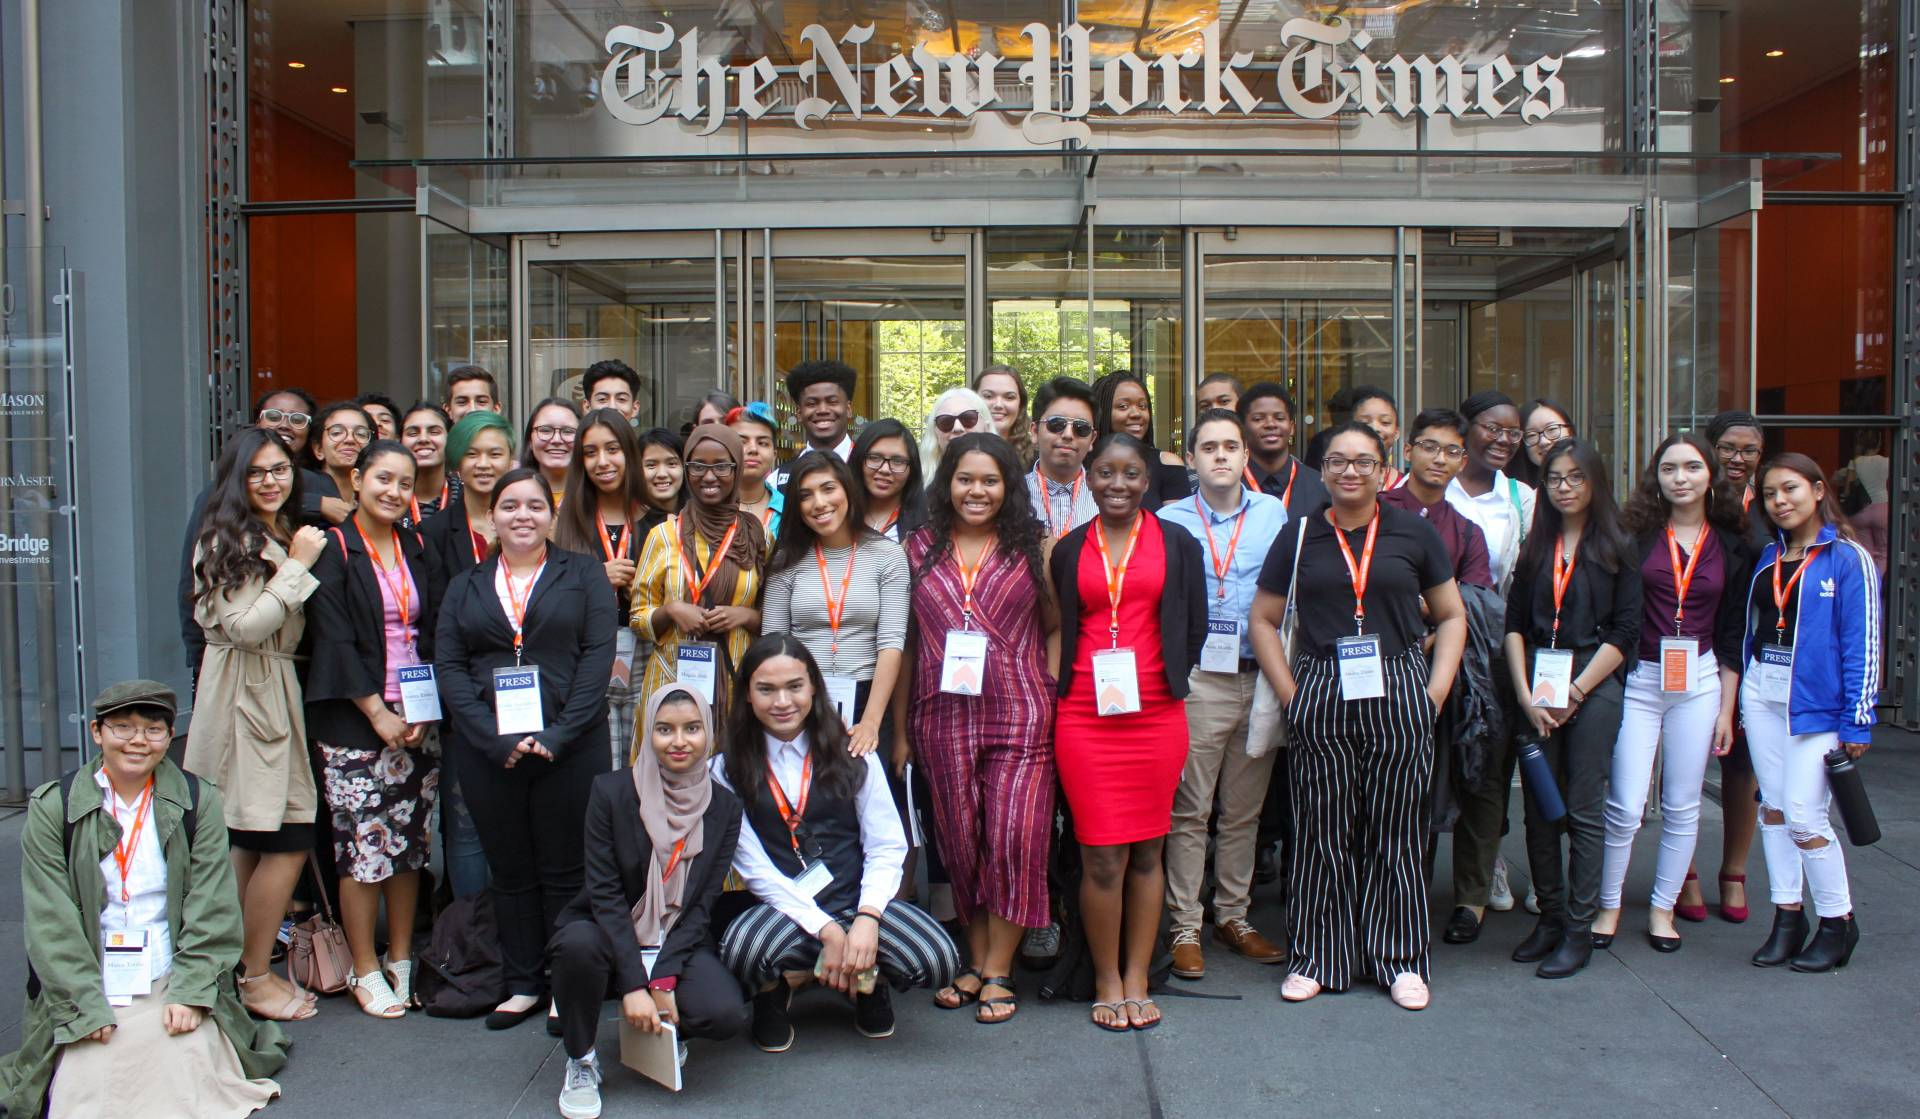 Summer Journalism Program students standing outside New York Times builiding